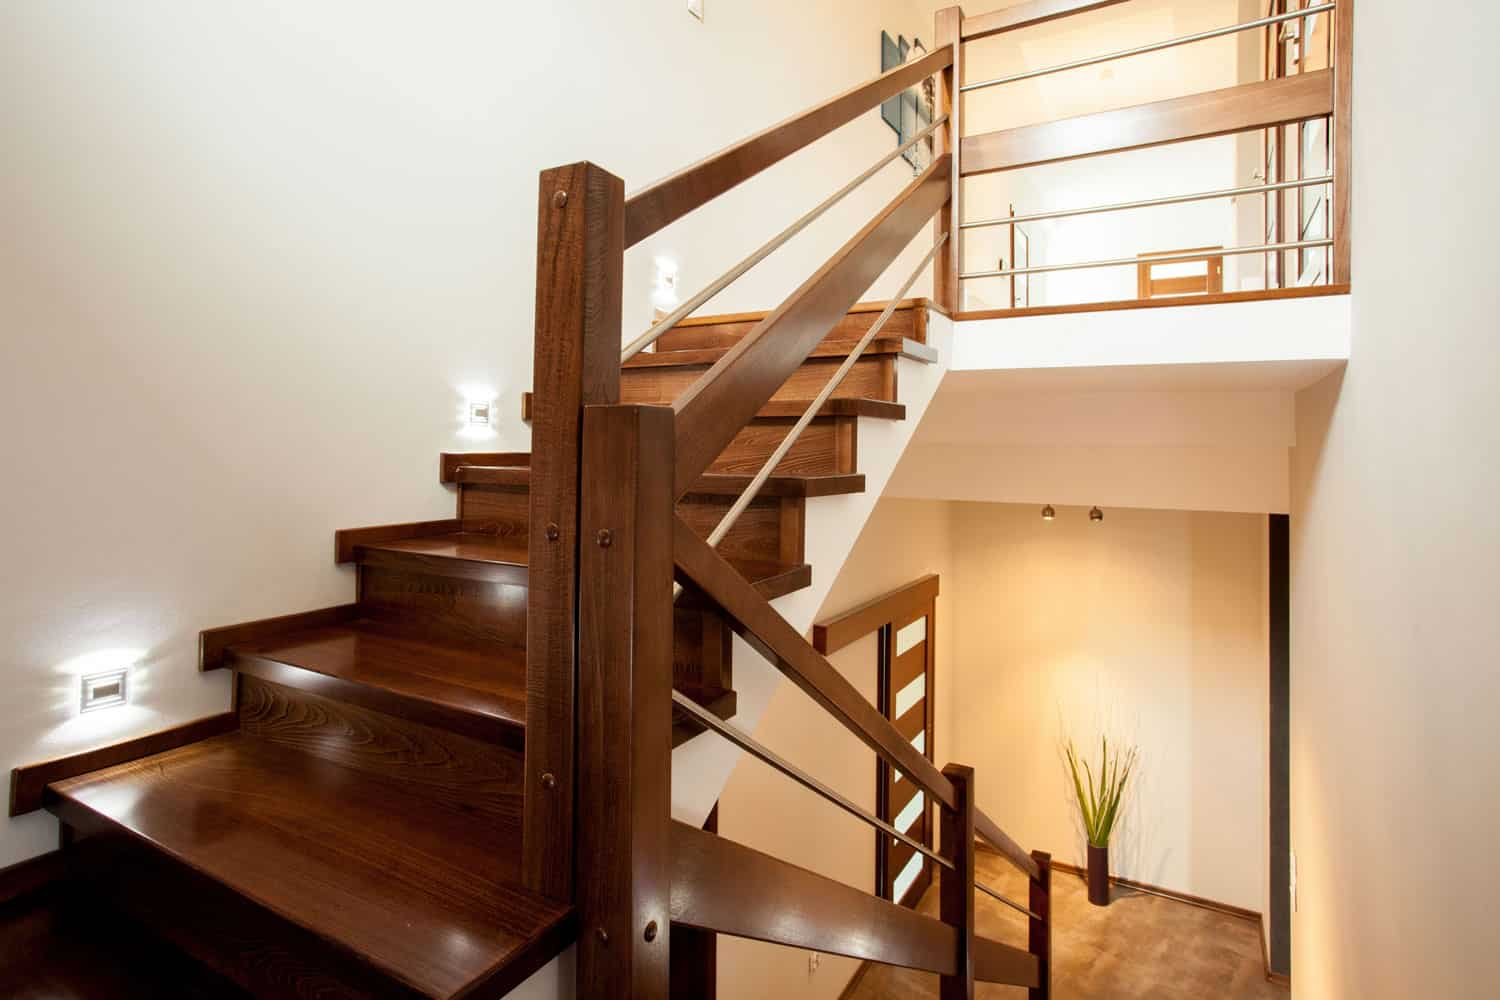 Wooden staircase with wooden handrails